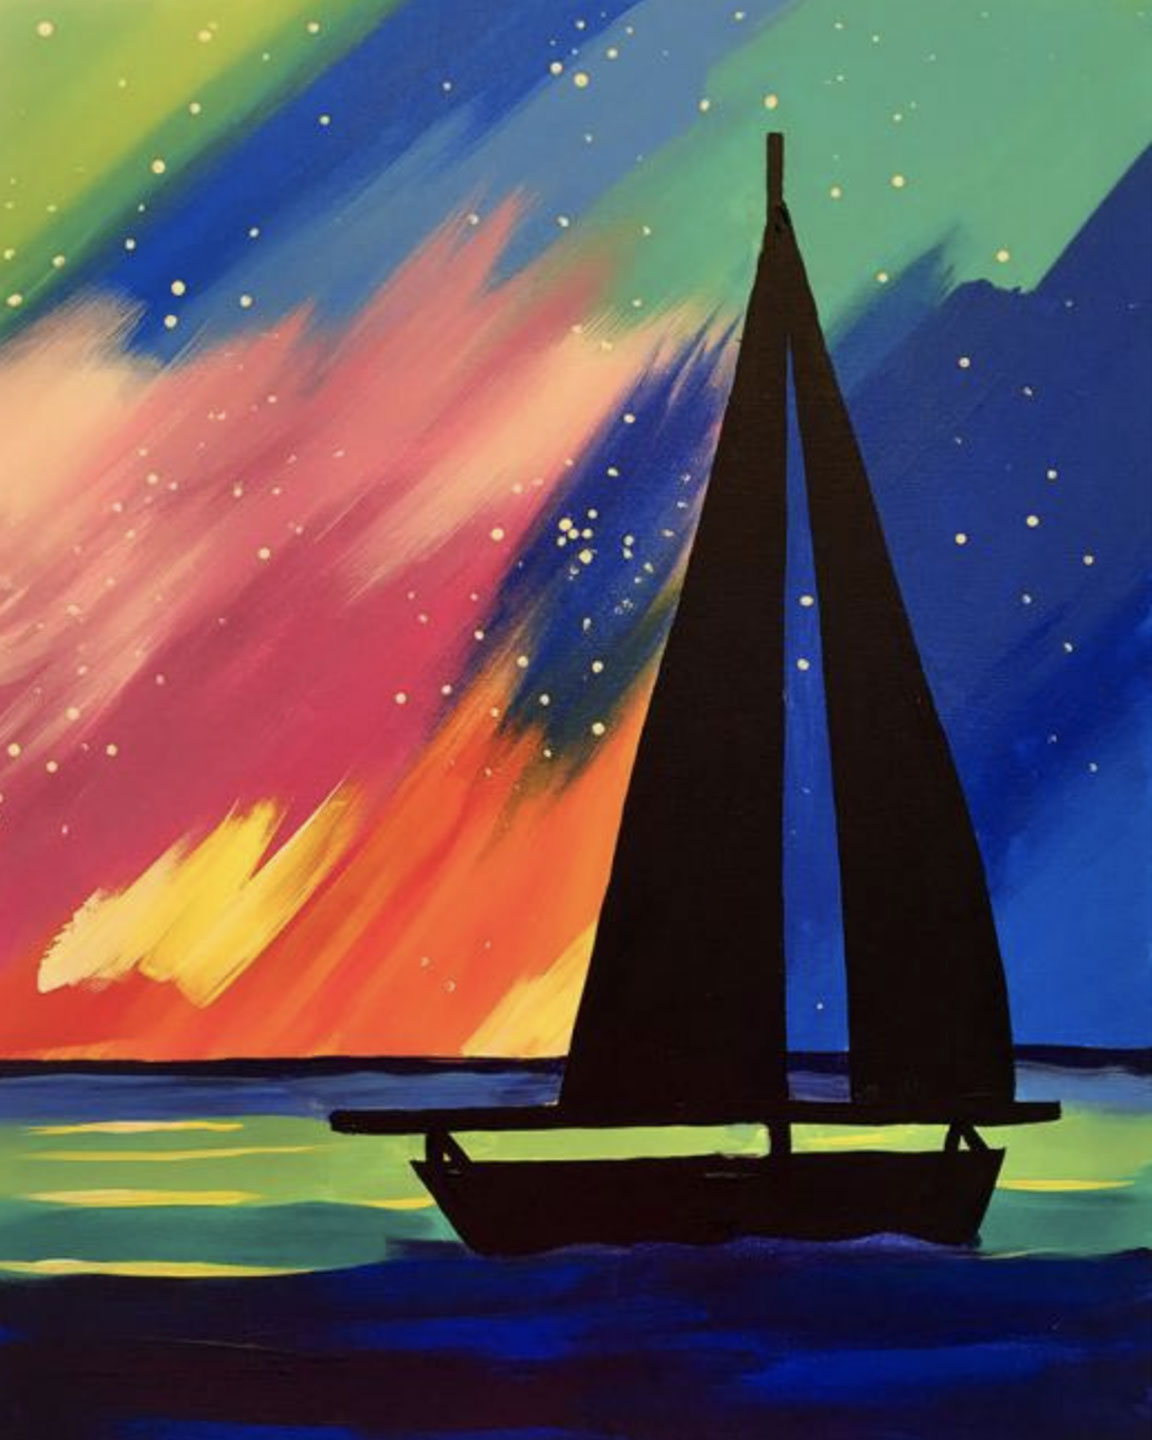 Sail Boat (2 hours)